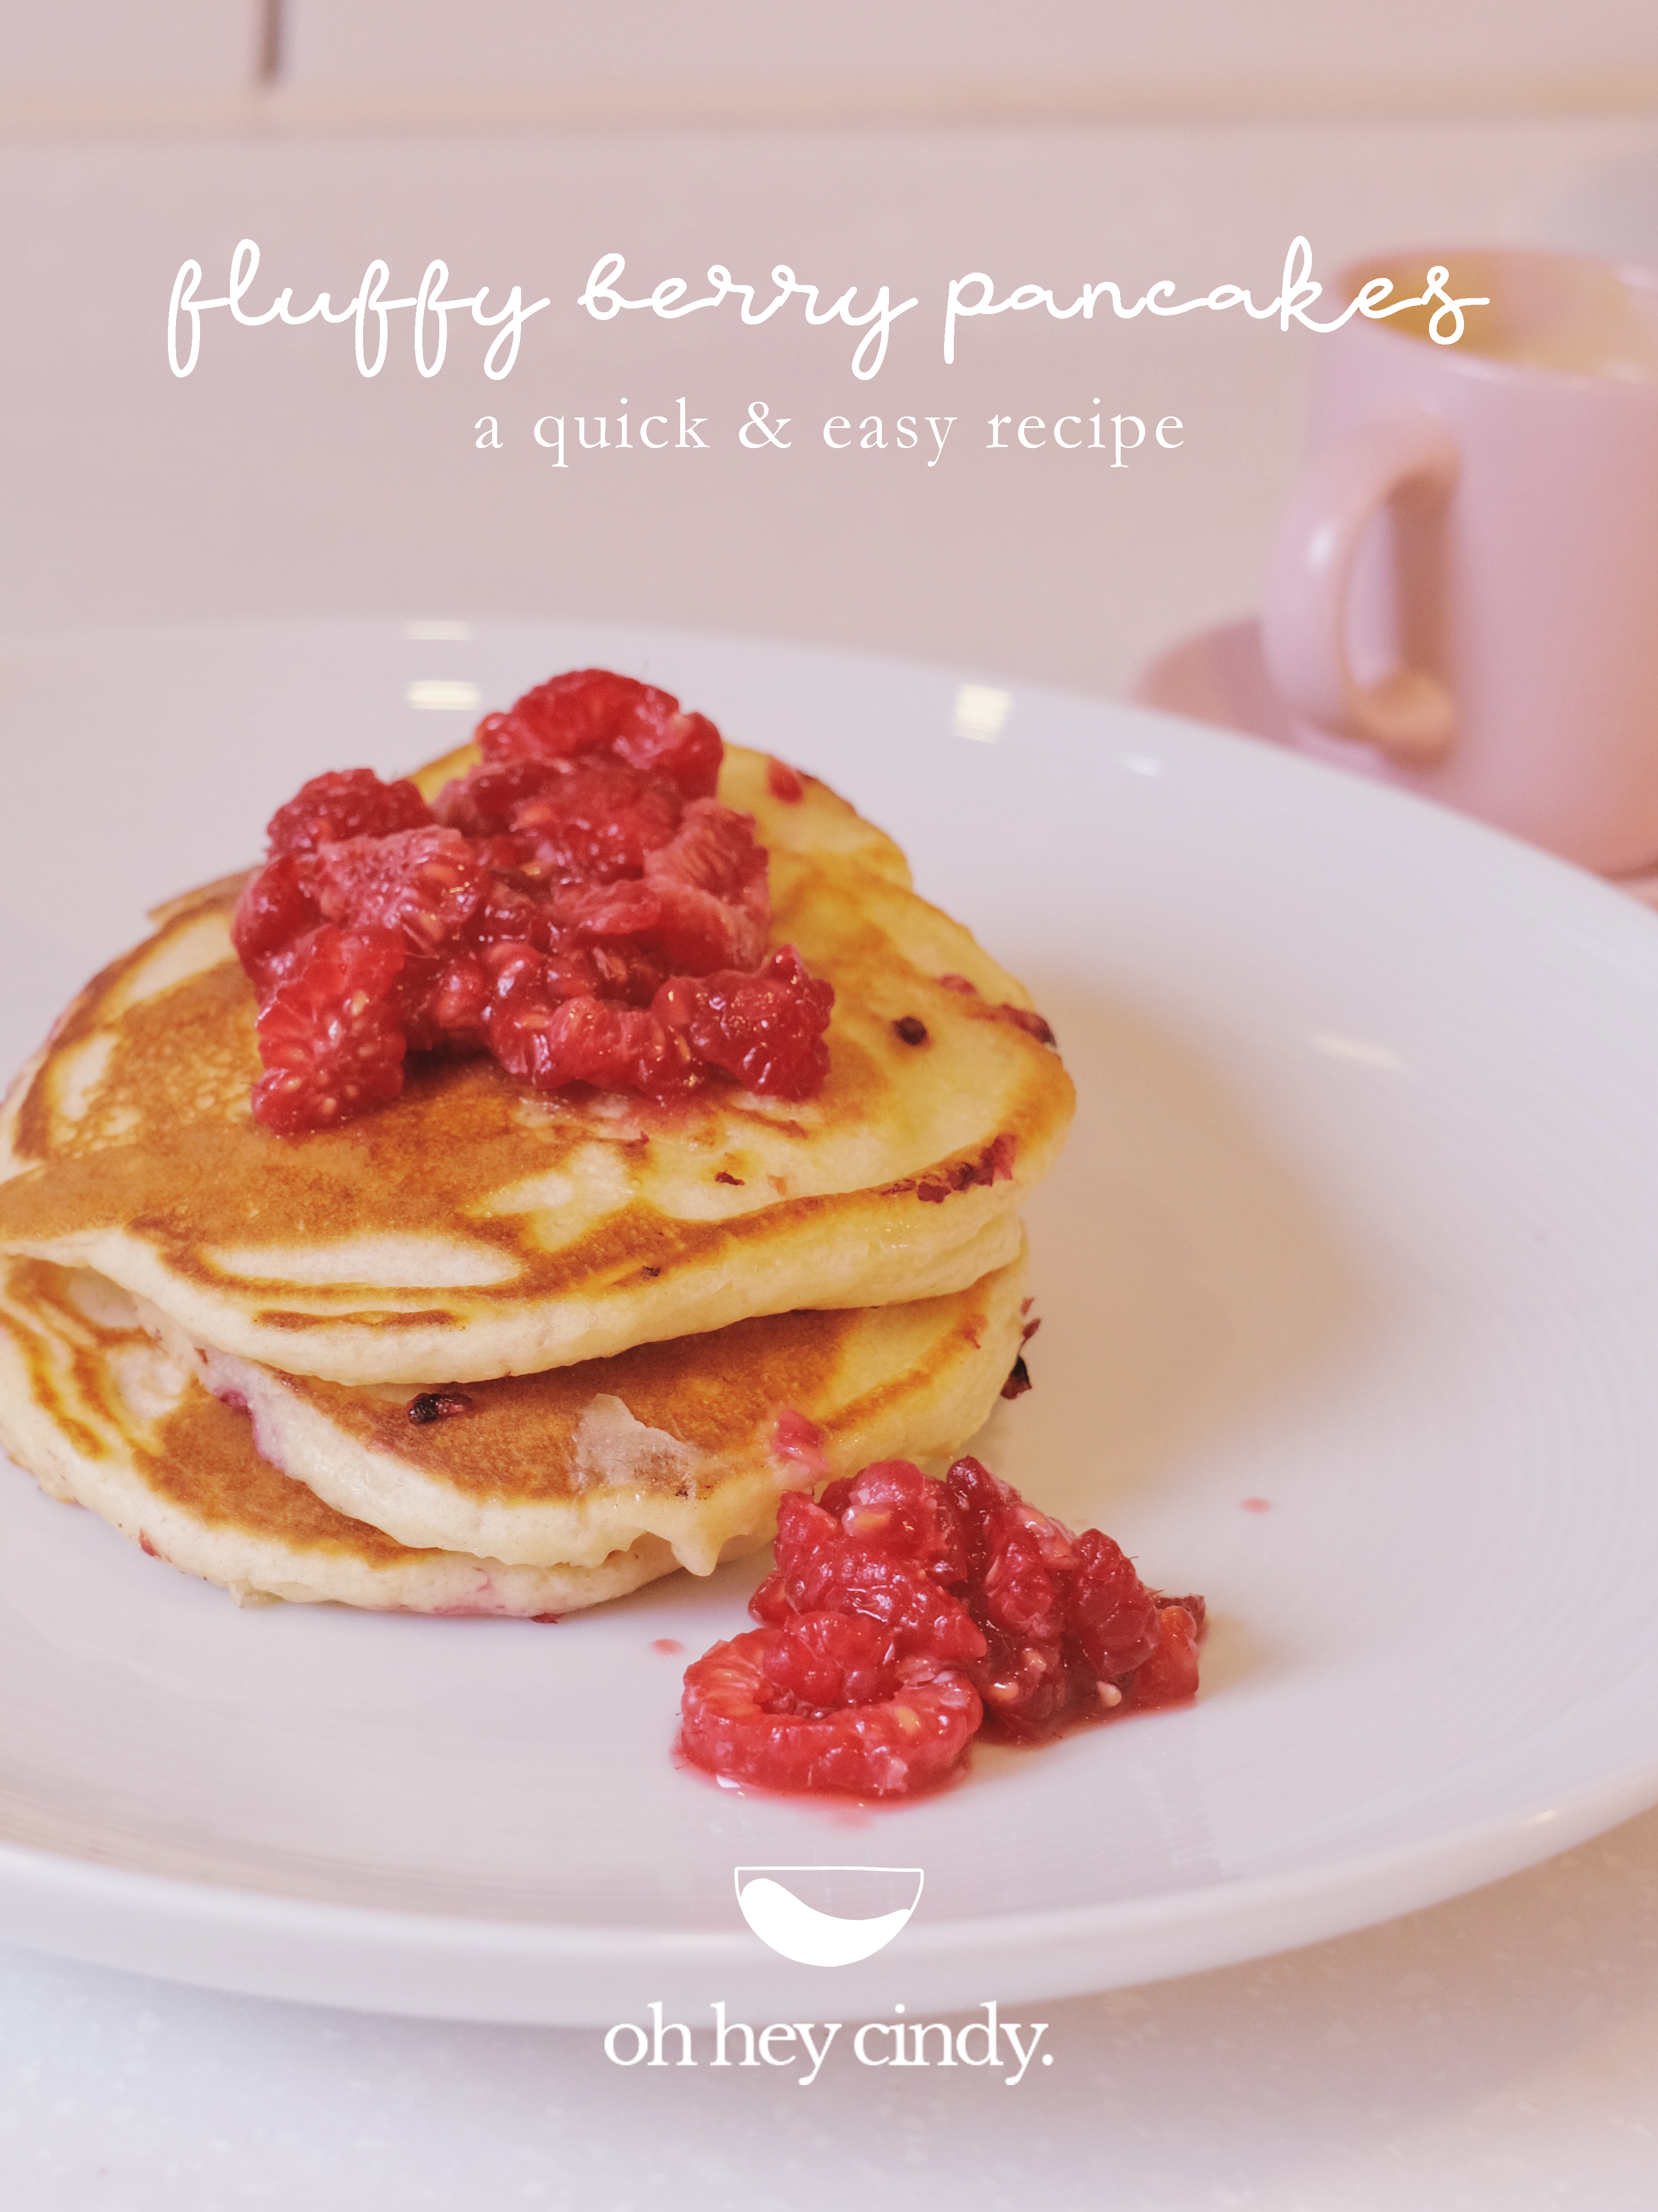 Oh Hey Cindy - Fluffy Berry Pancakes